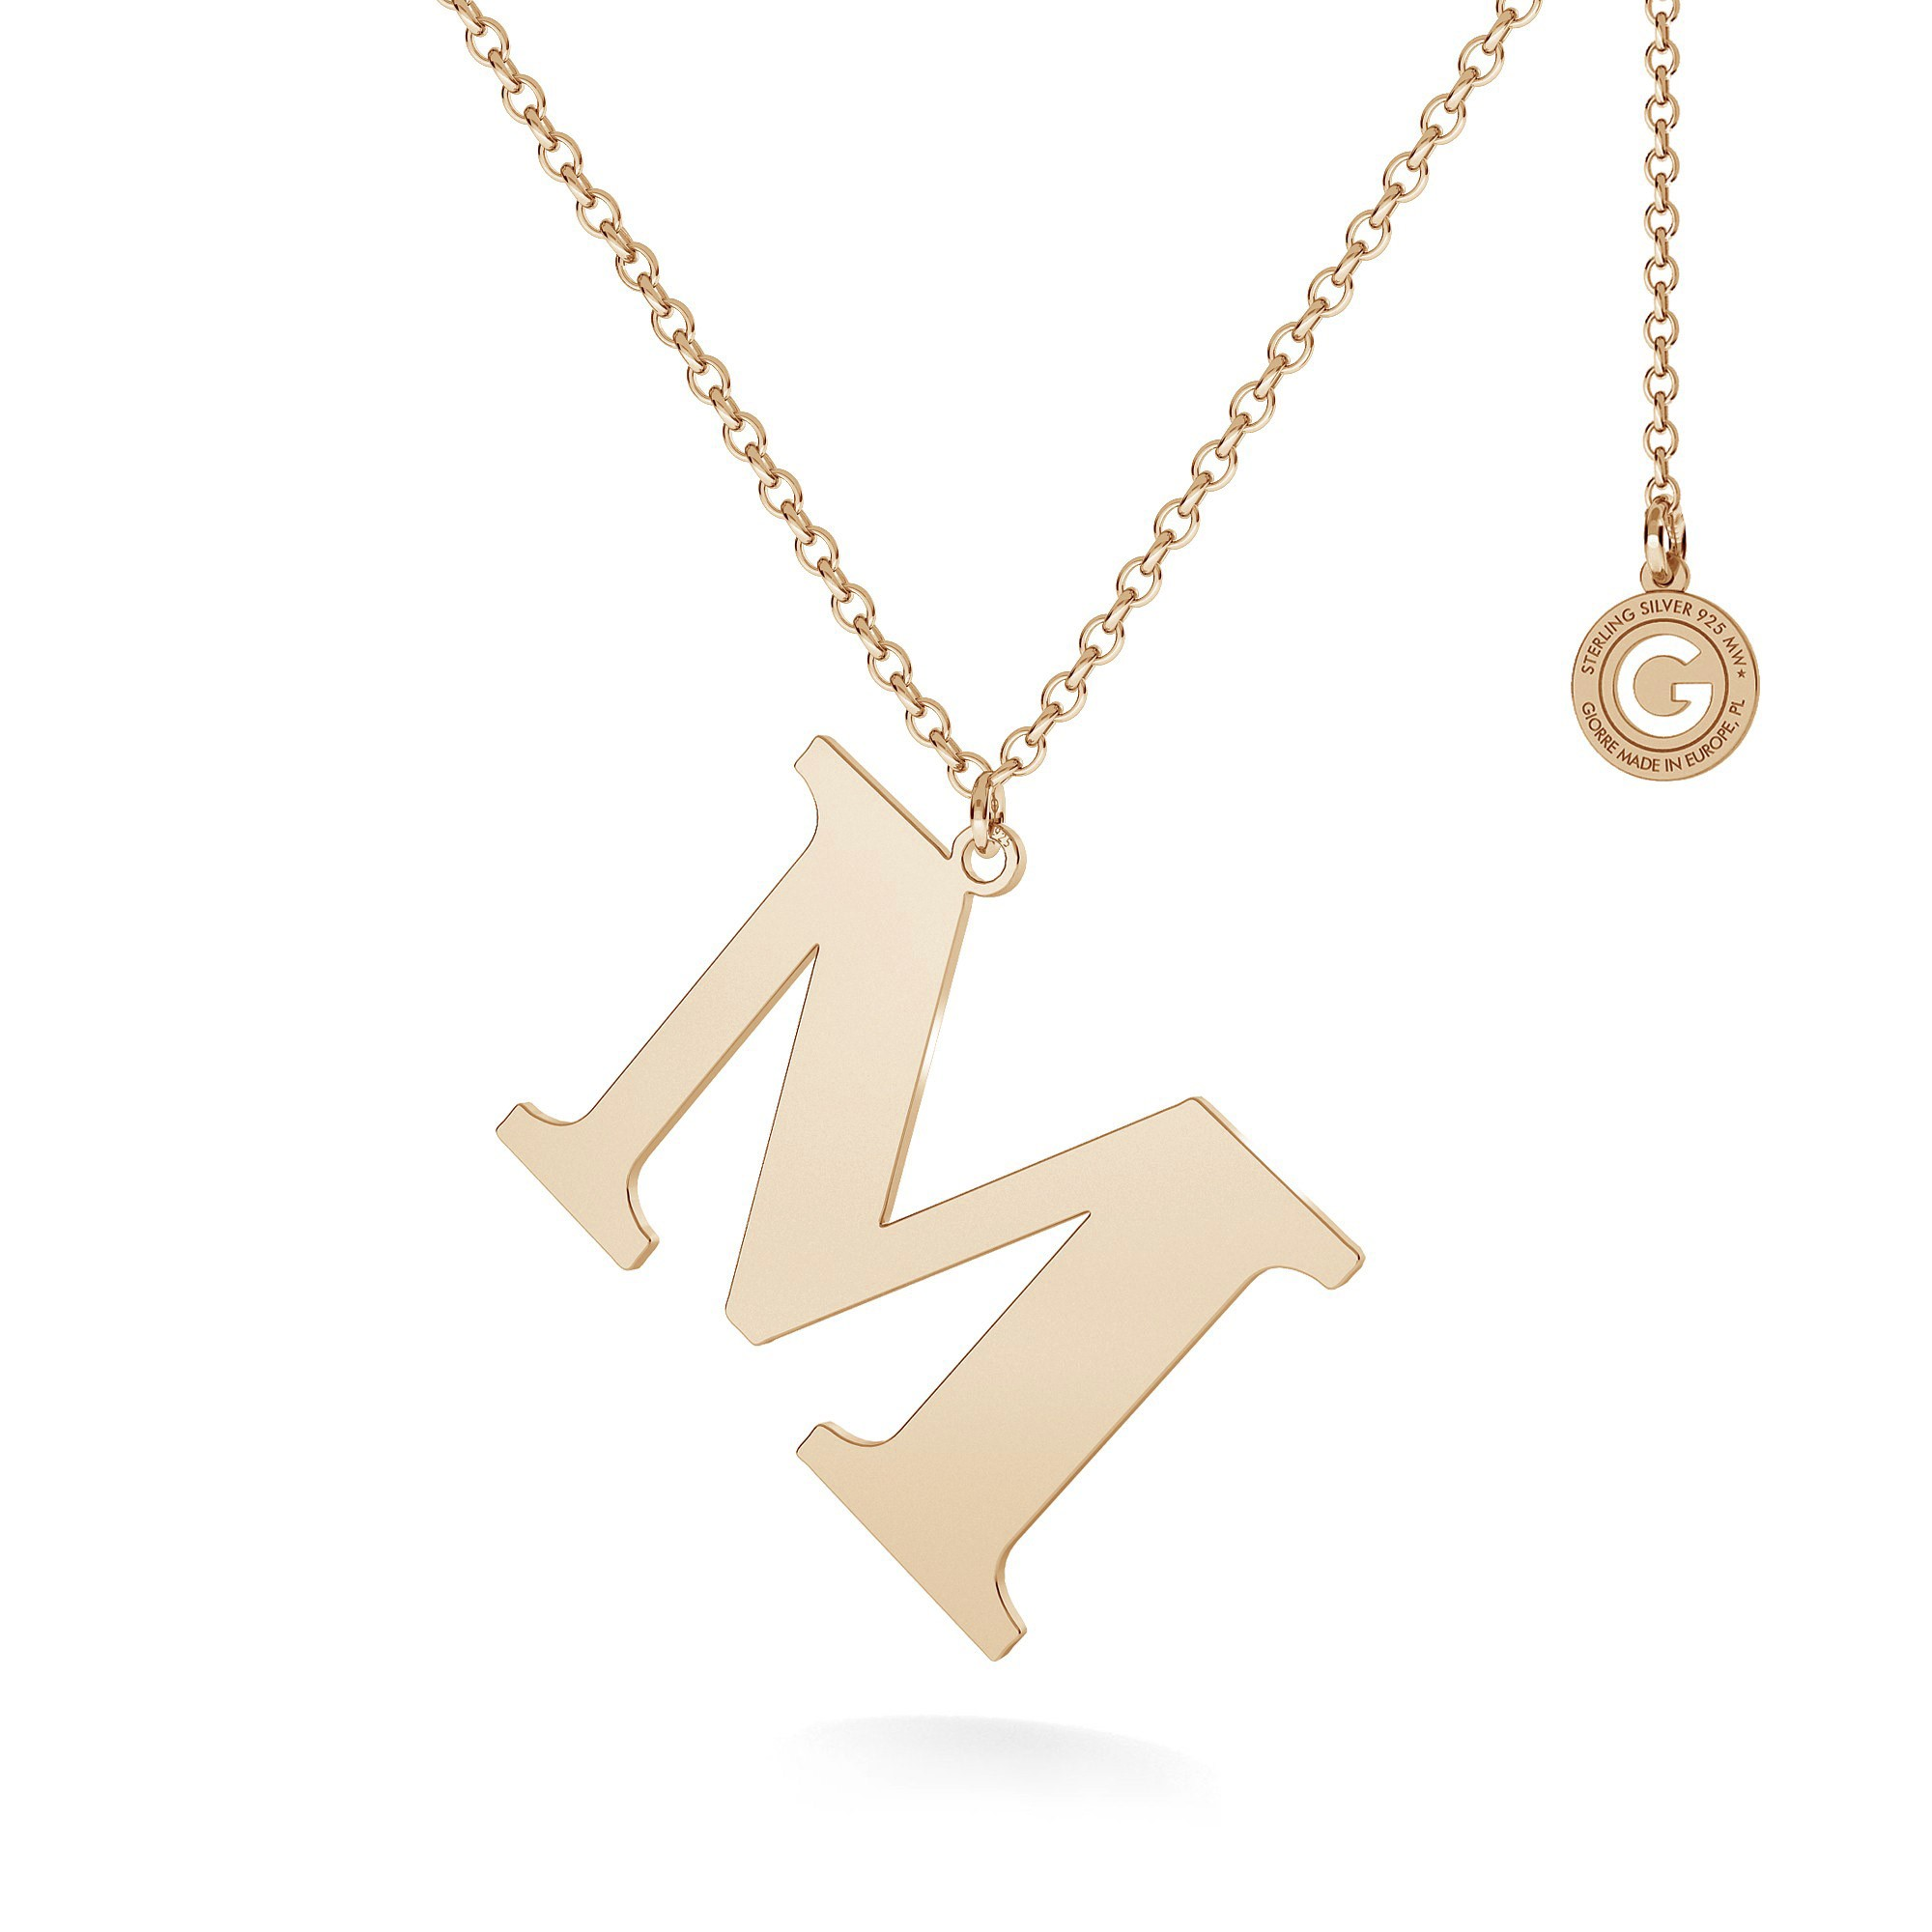 Necklace with 3 cm letter, sterling silver 925